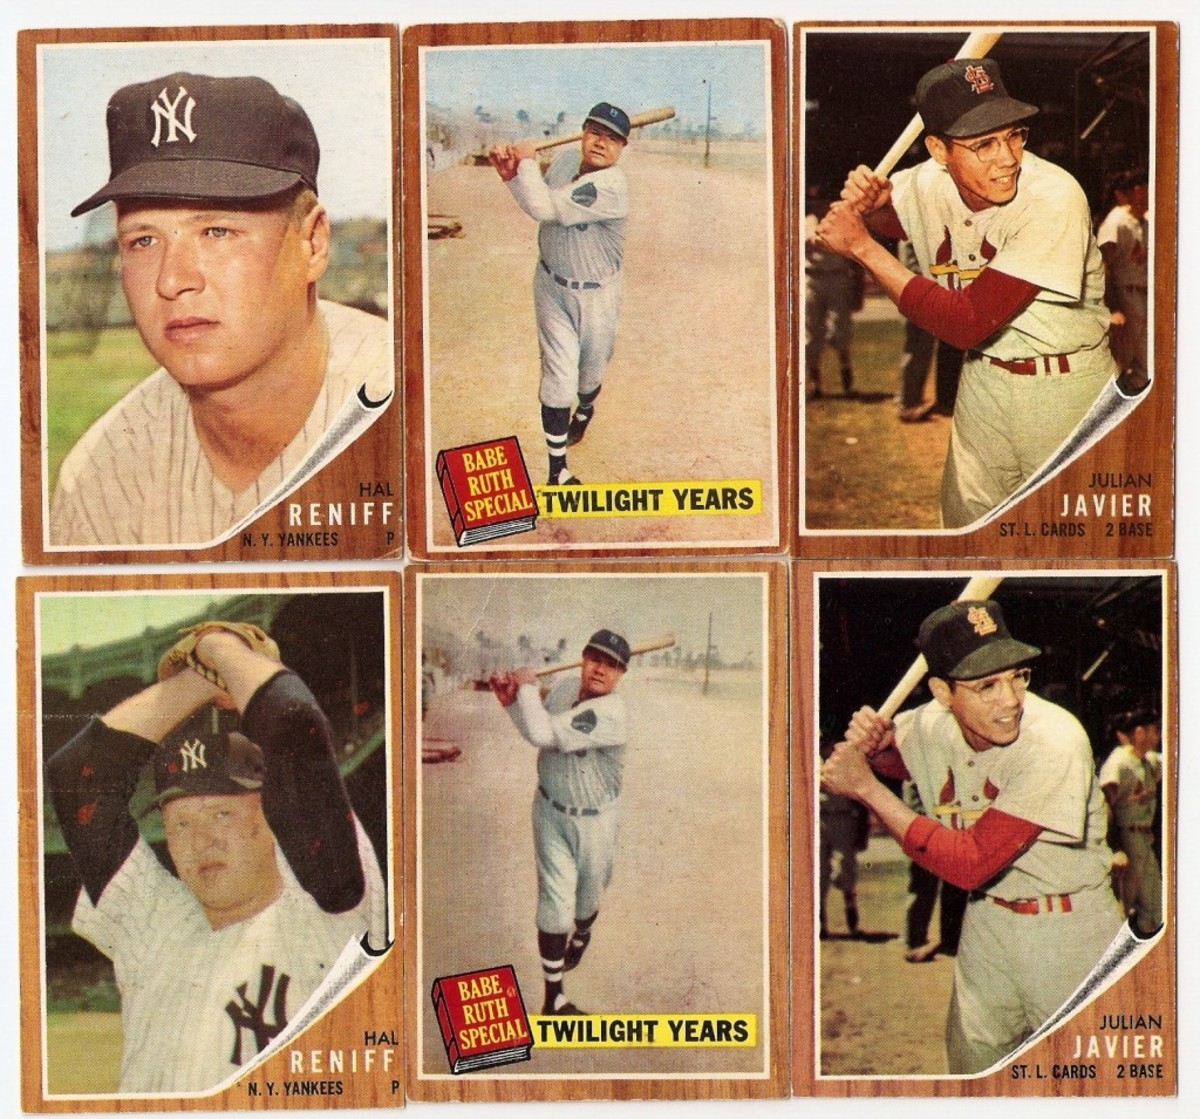 The second print run of 1962 Topps cards were printed by two different printers resulting in variations in poses, a distinct green tint from one printer and differences in how images were cropped.